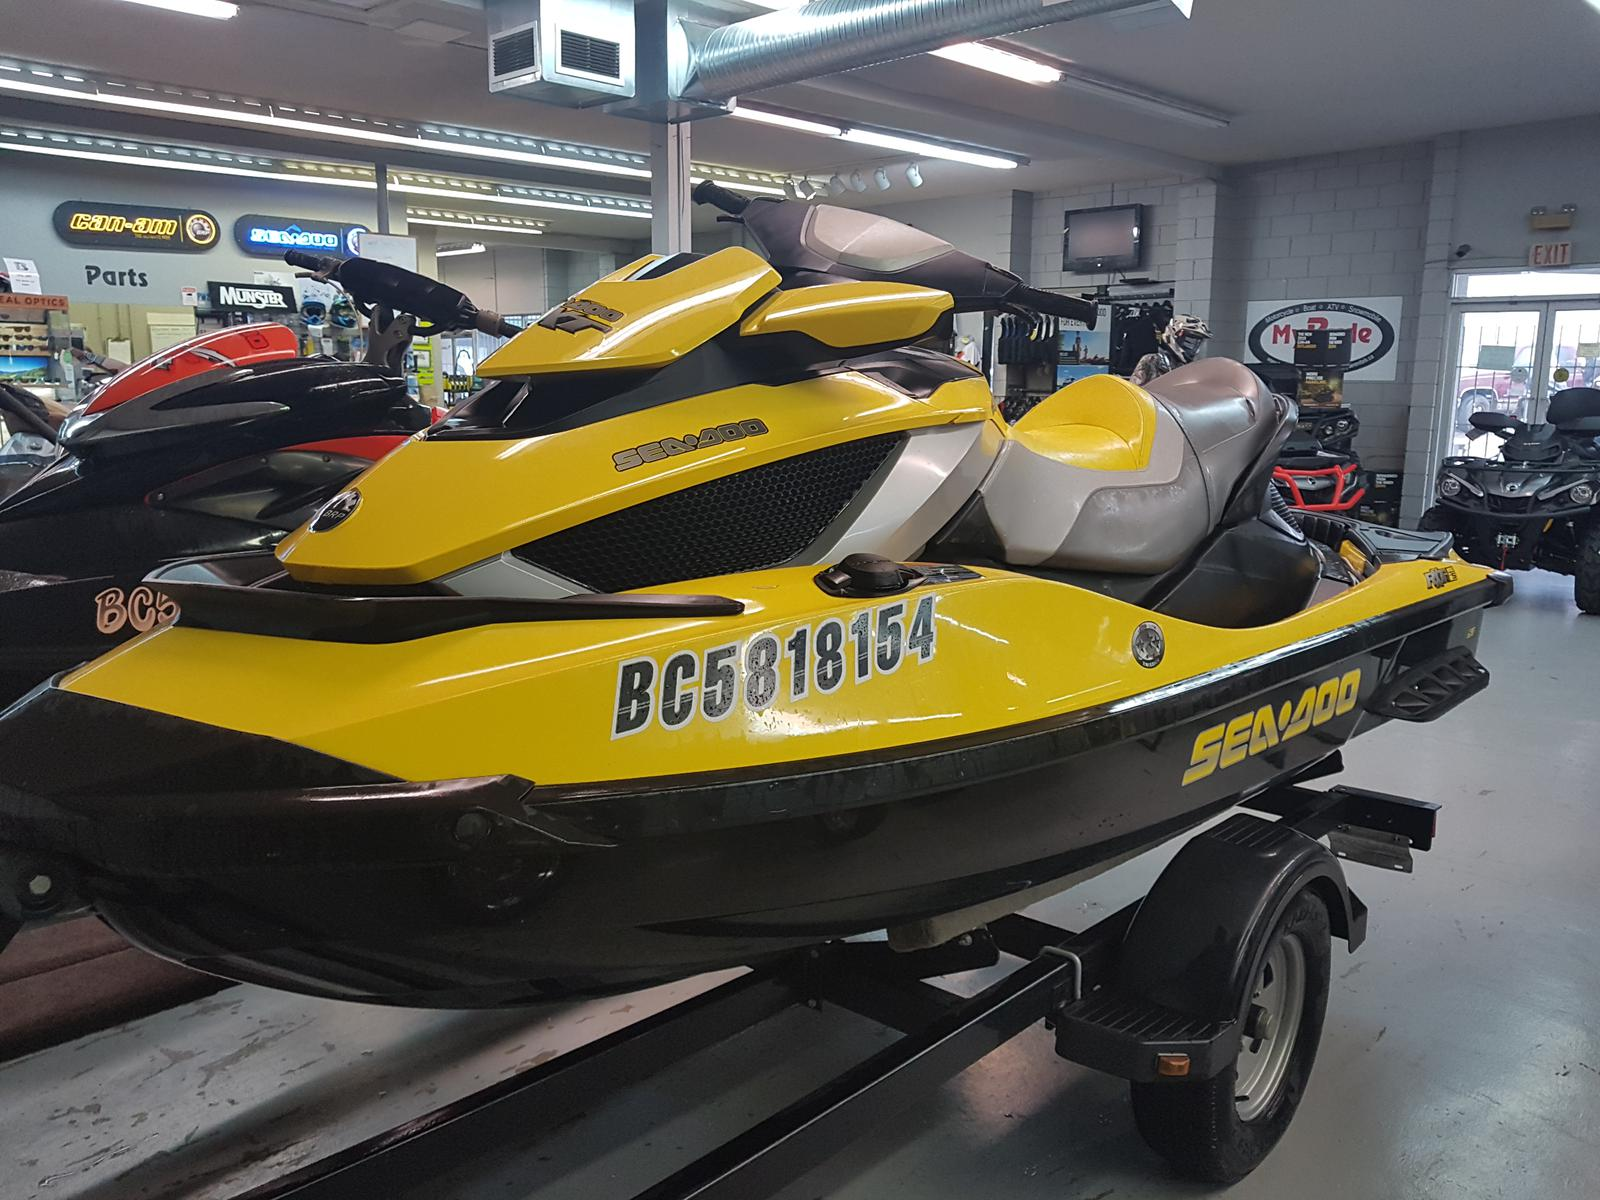 For Sale: 2010 Sea Doo Pwc Rxt Is 260 ft<br/>Banner Recreational Products